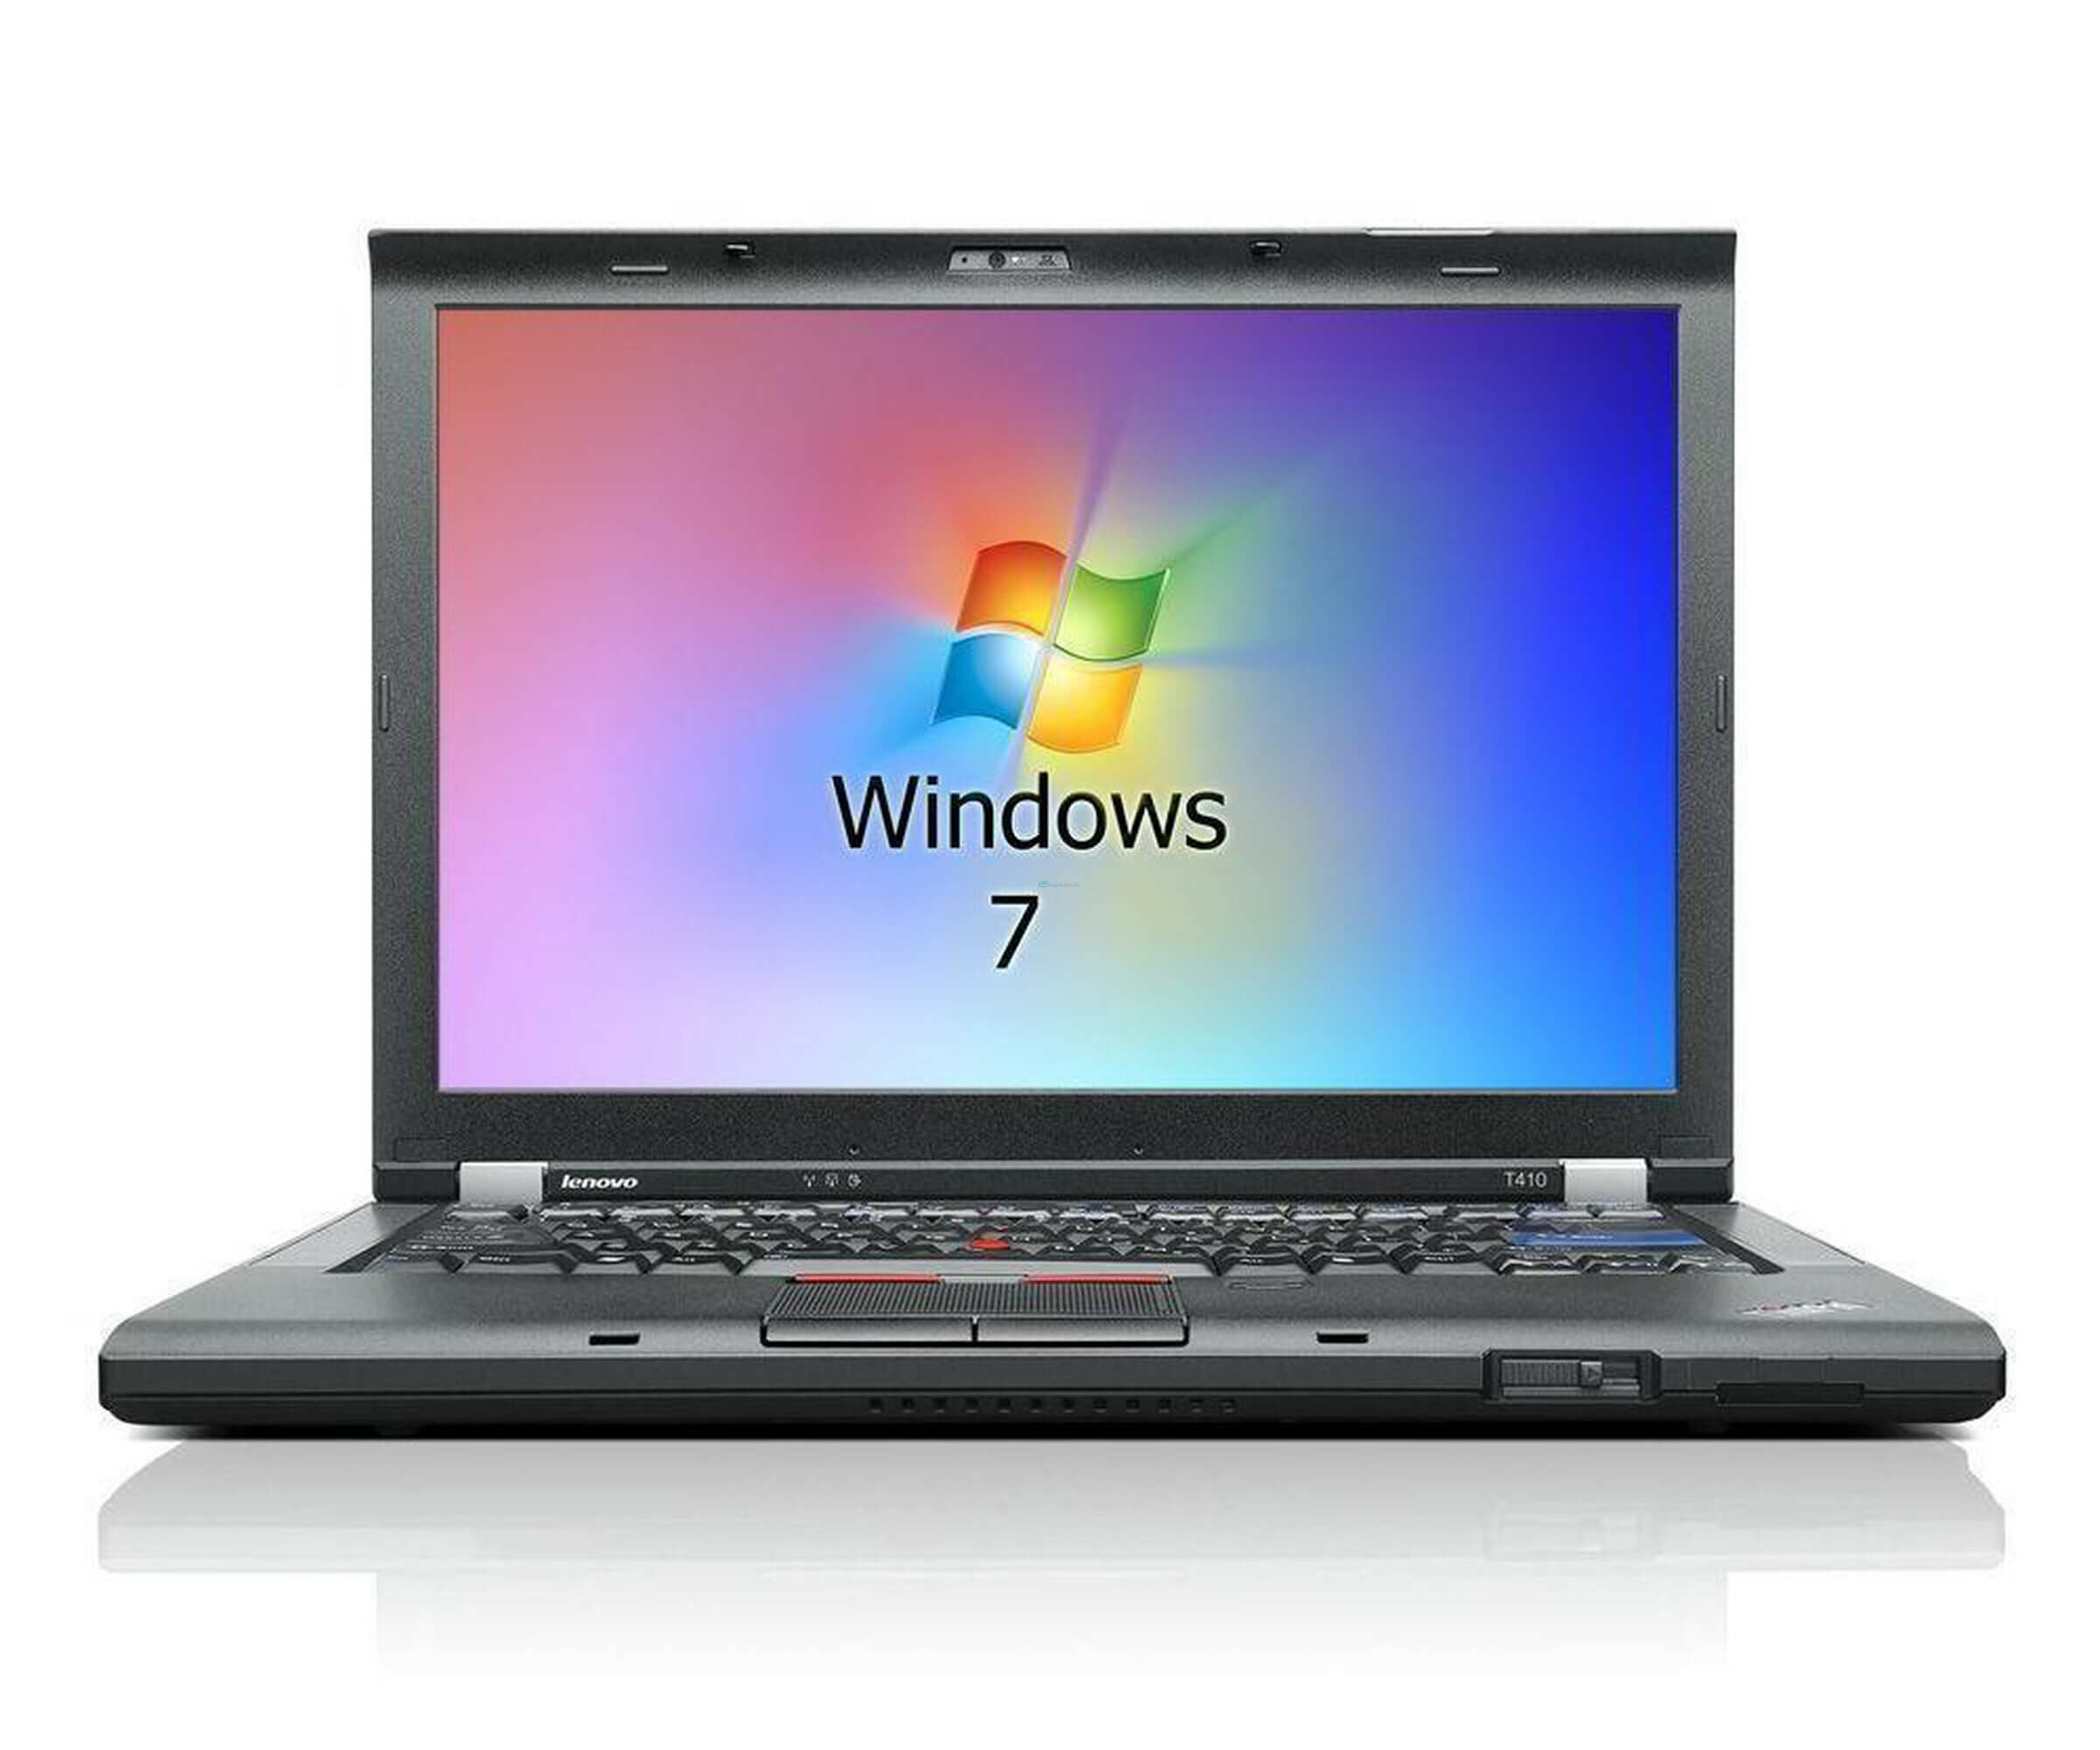 Lenovo ThinkPad T410 - Intel Core i5 560M 2.67 Ghz - 4 GB RAM - 250 GB HDD - 14.1 TFT -  W7